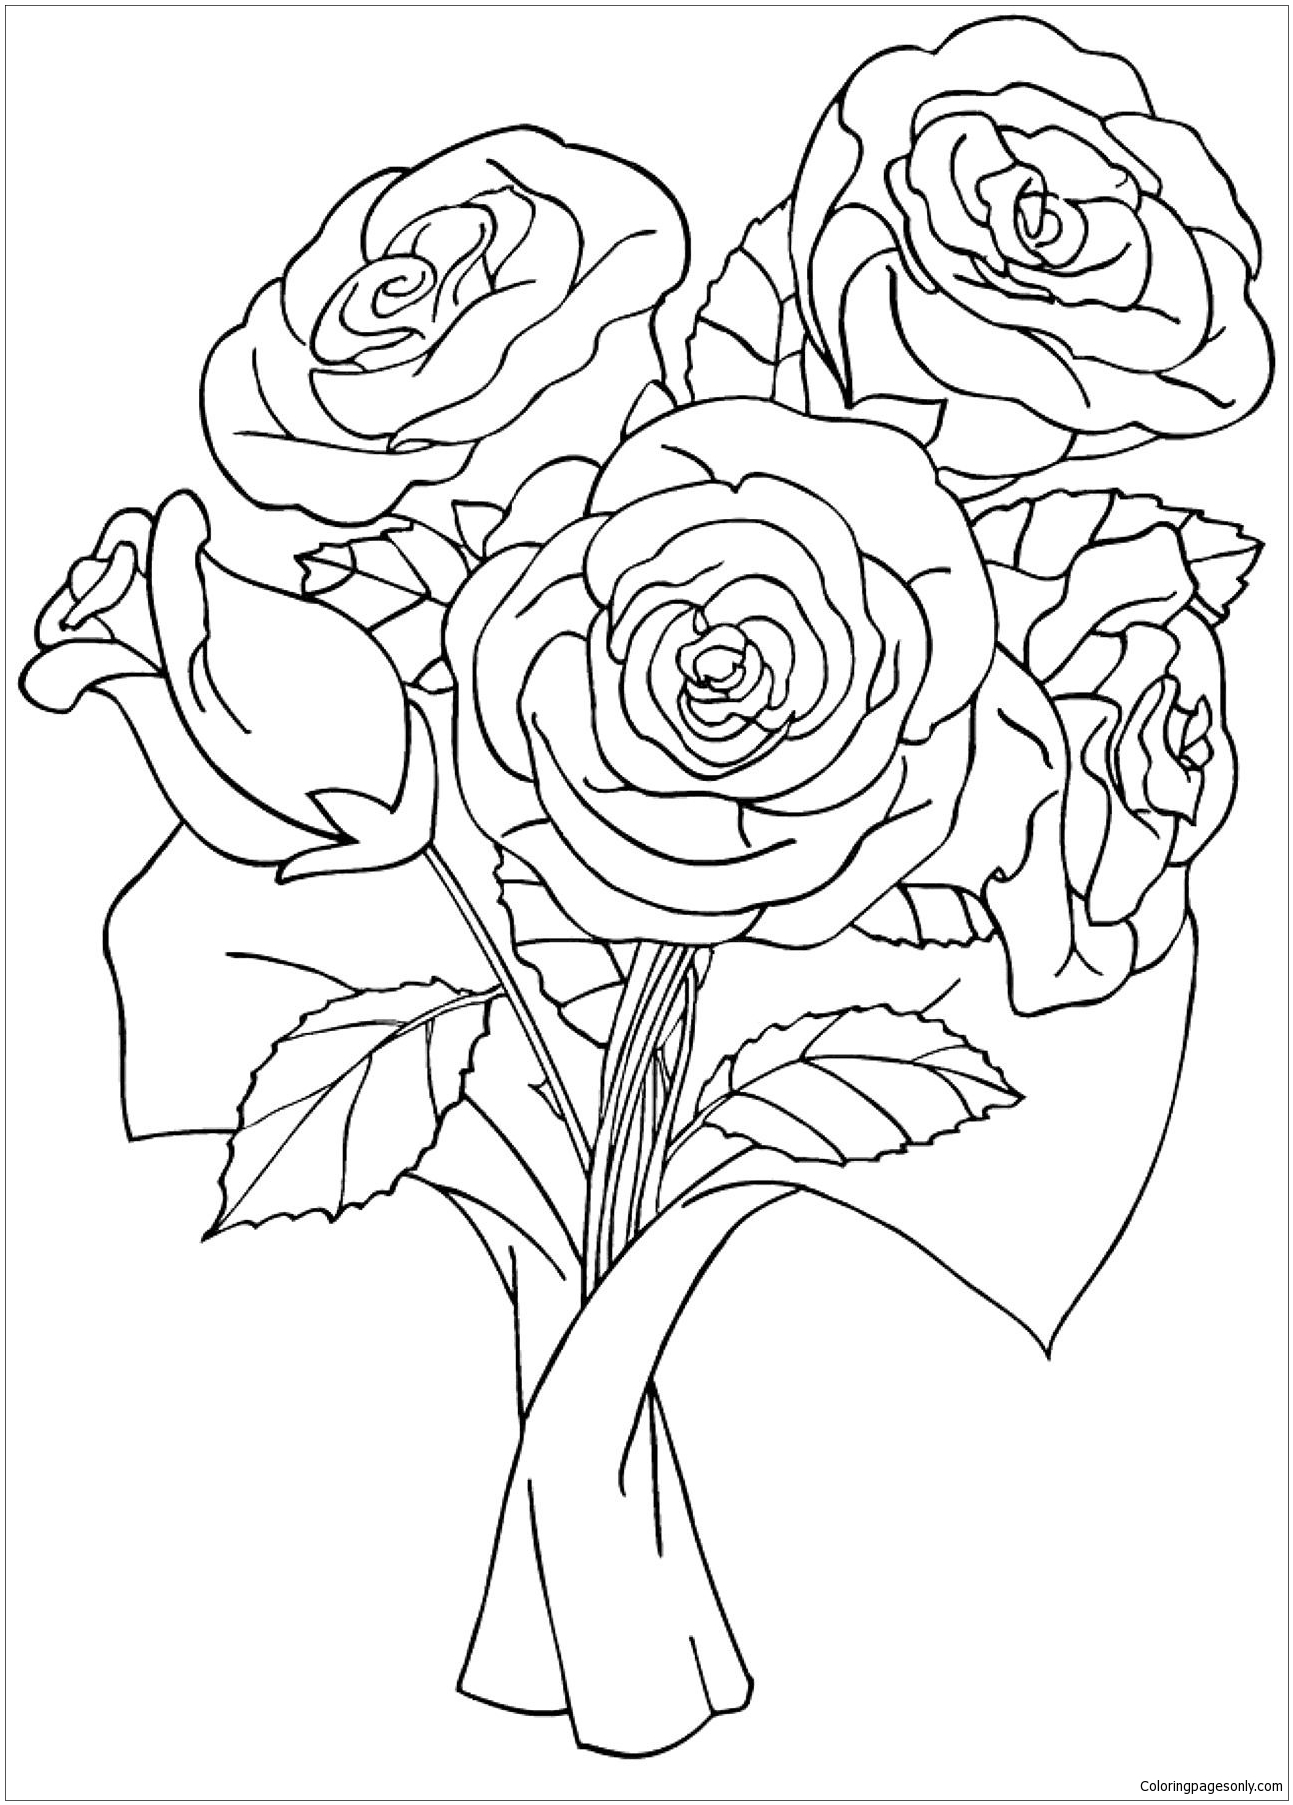 a coloring page of a rose presents and gifts coloring pages part 2 coloring rose a of page a